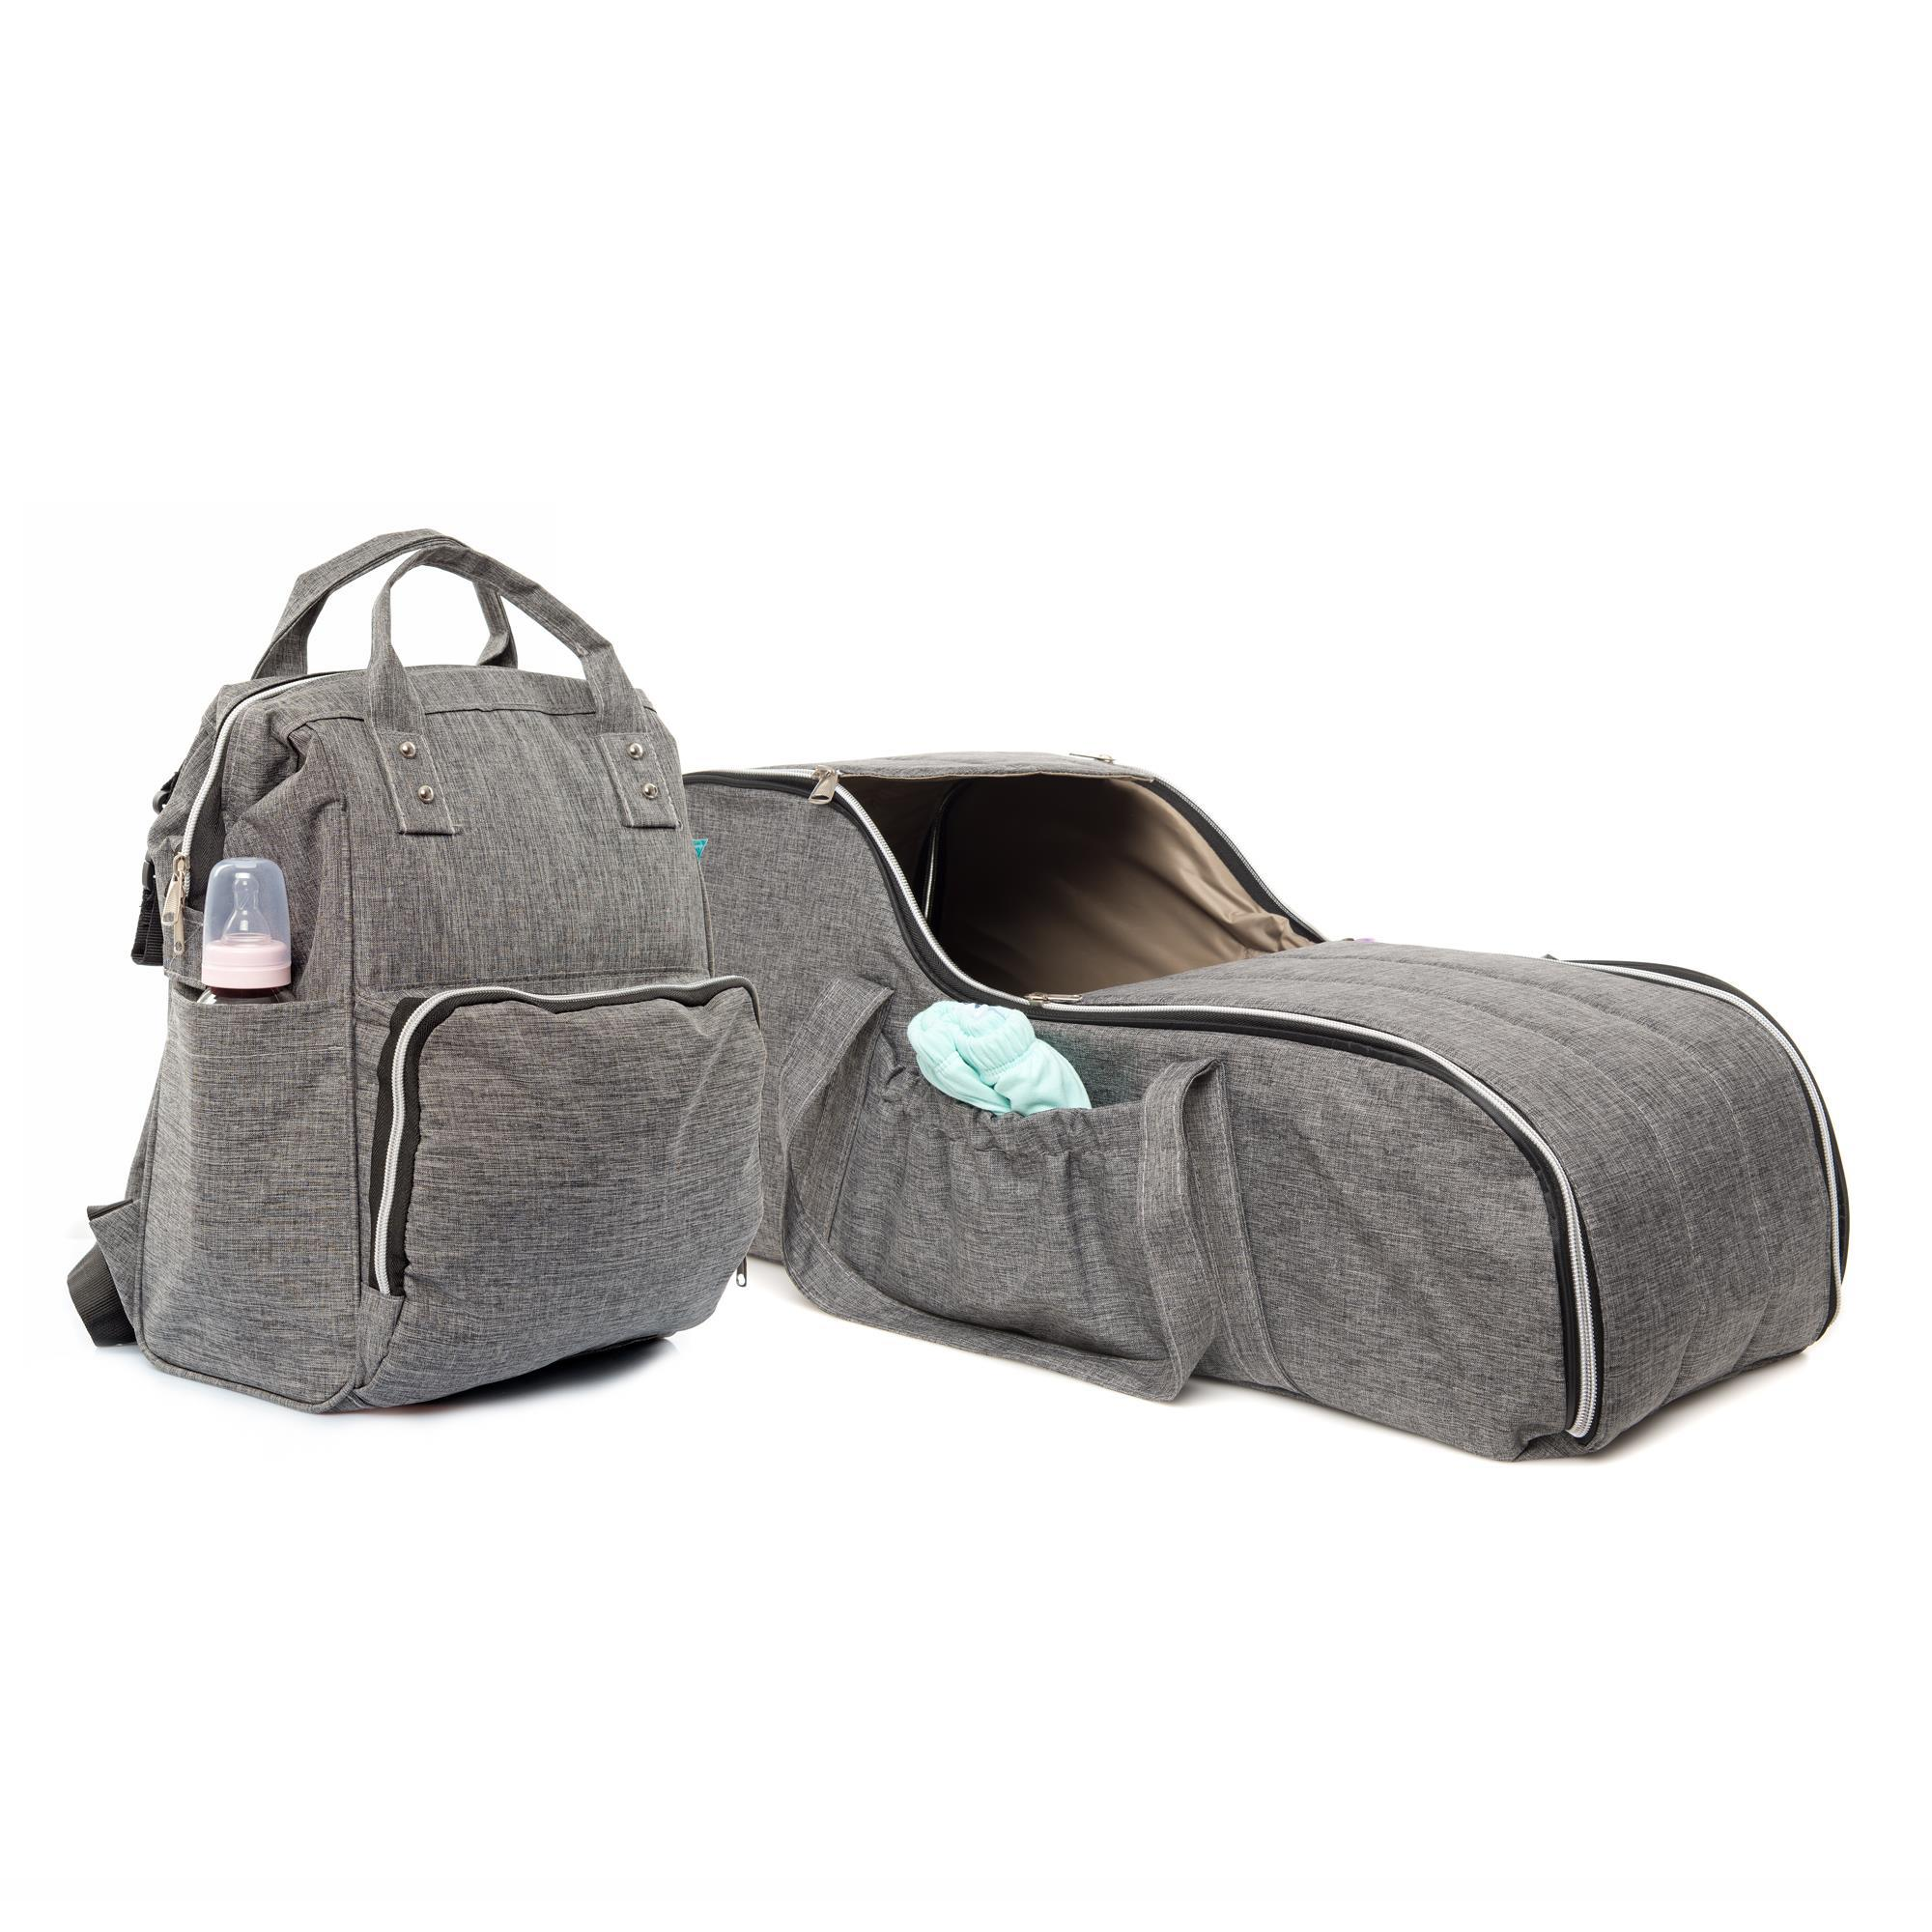 BABYBABY Baby Carrying, Carrycot, Waterproof, Windproof, BAG AND PORTBEB, BABY CARRYING